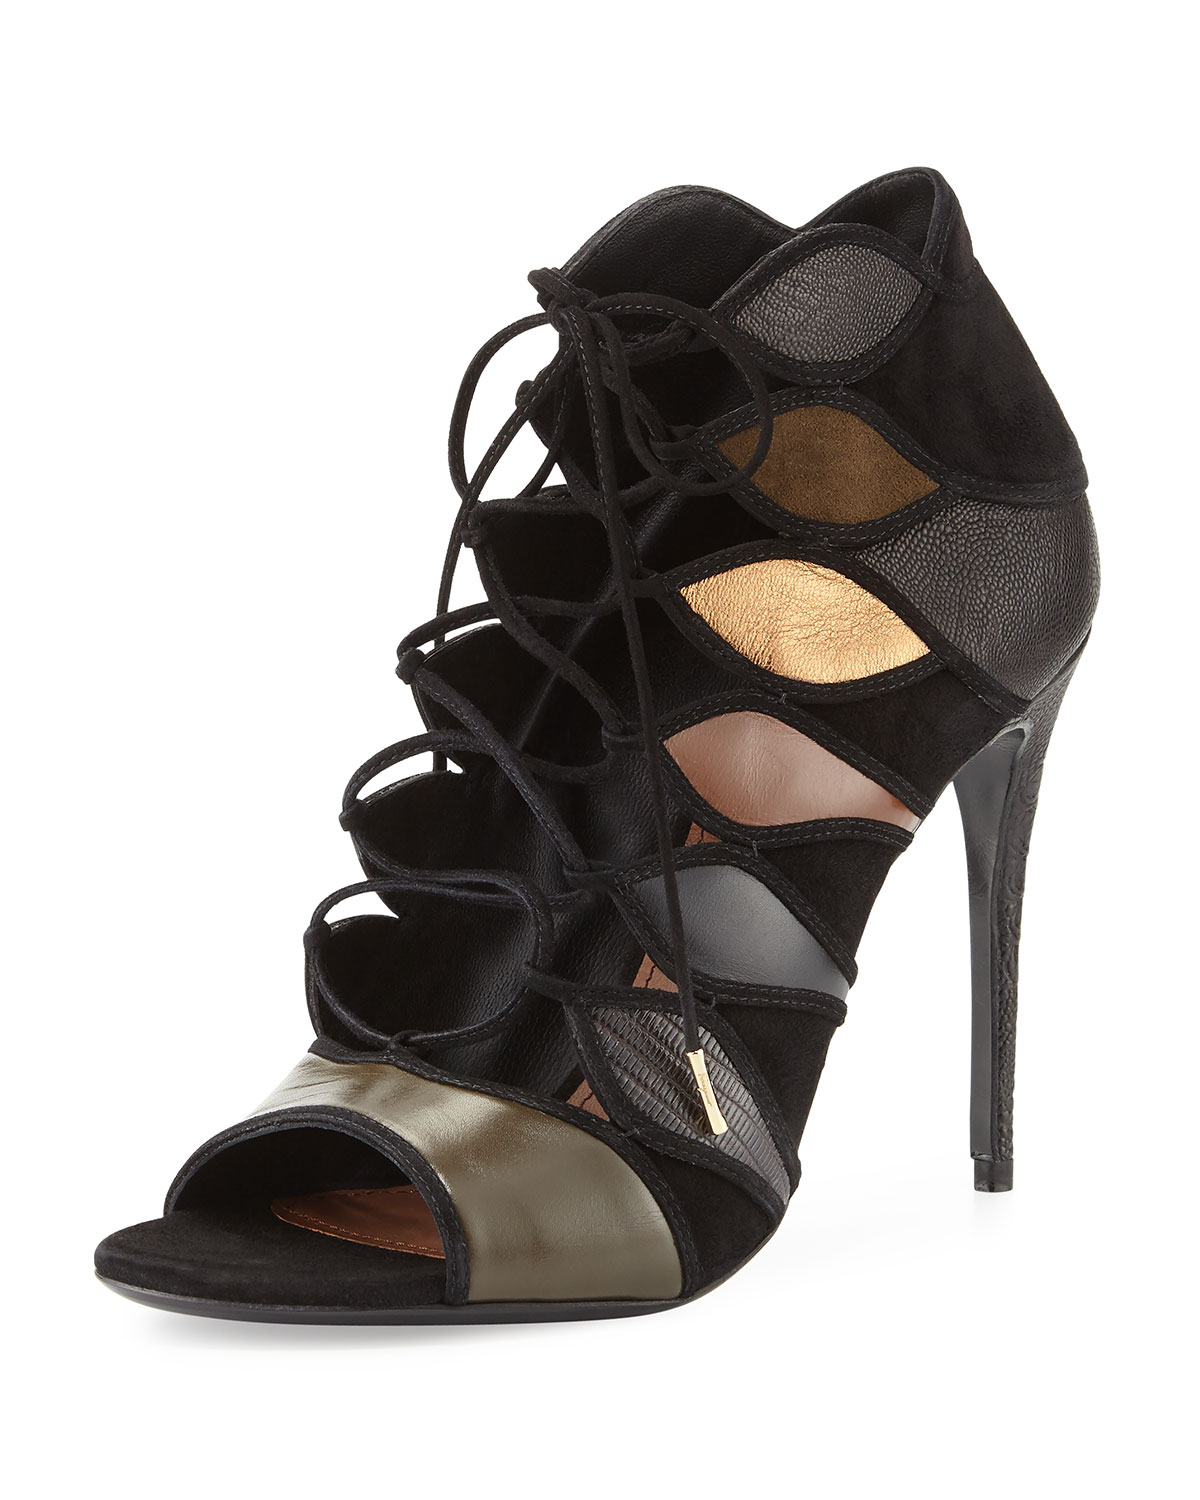 Leather Lace-Up Sandal, Foret/Nero/Cacao